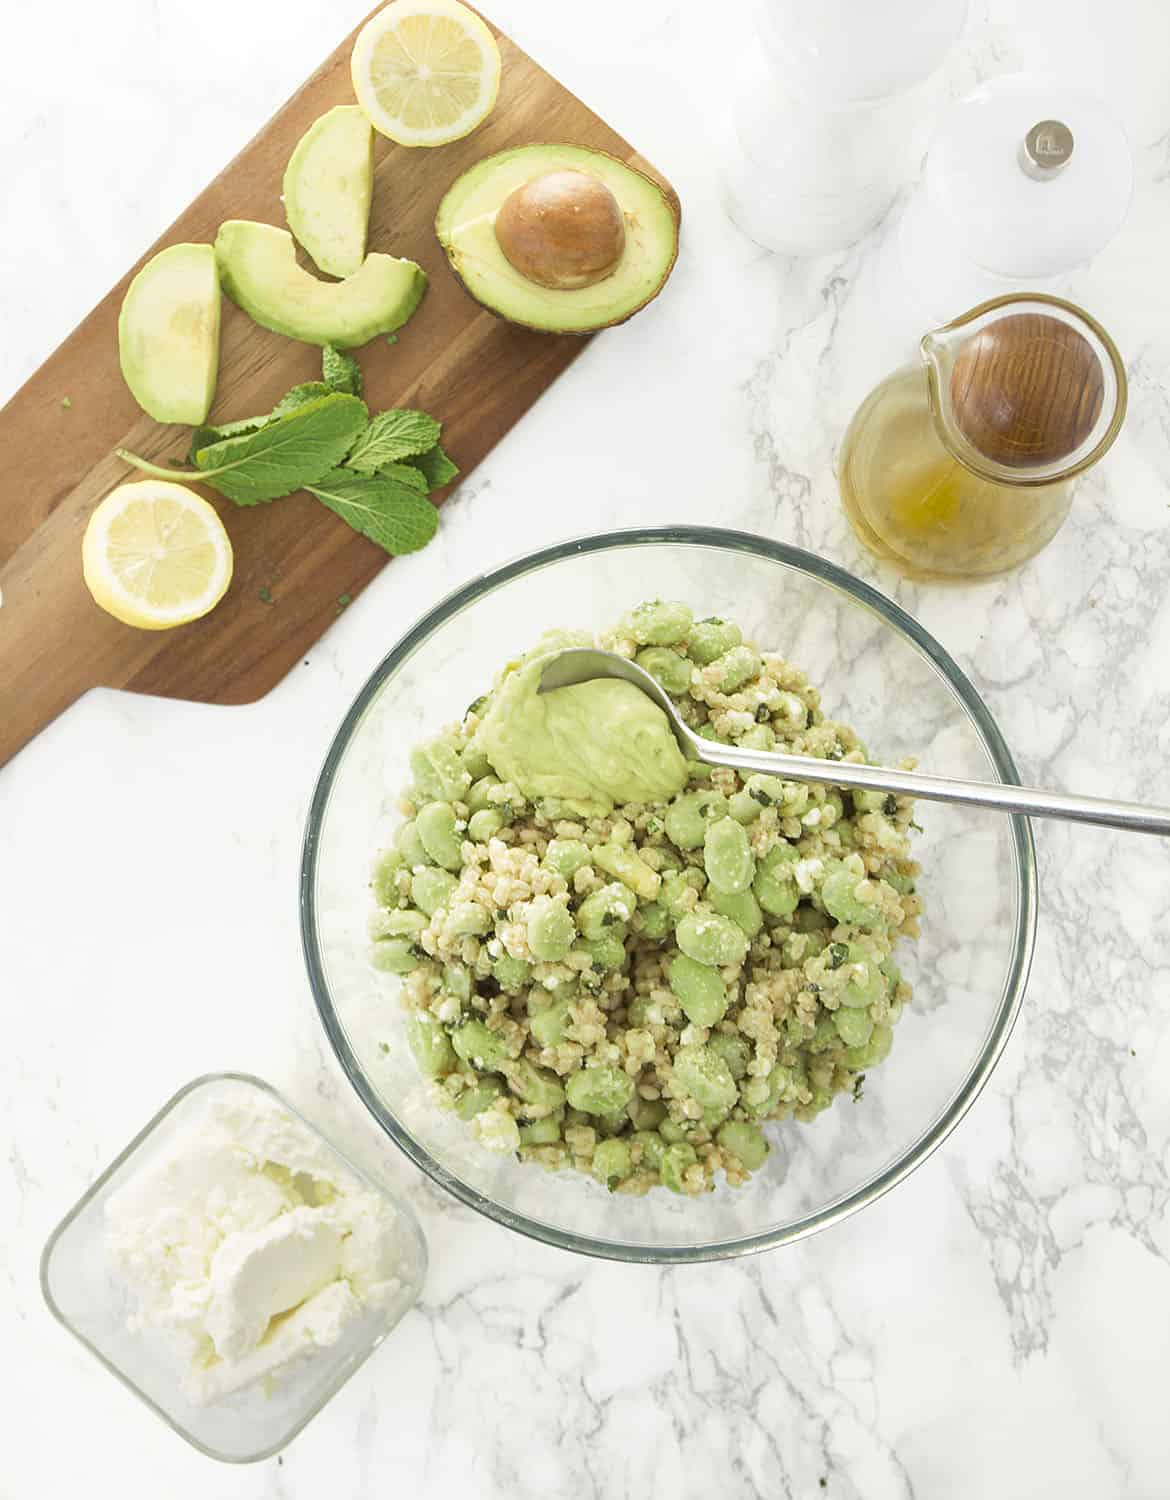 Fava bean salad on a glass bowl with a spoon fulled of avocado dressing. Oil, feta and a chopping board on the background.